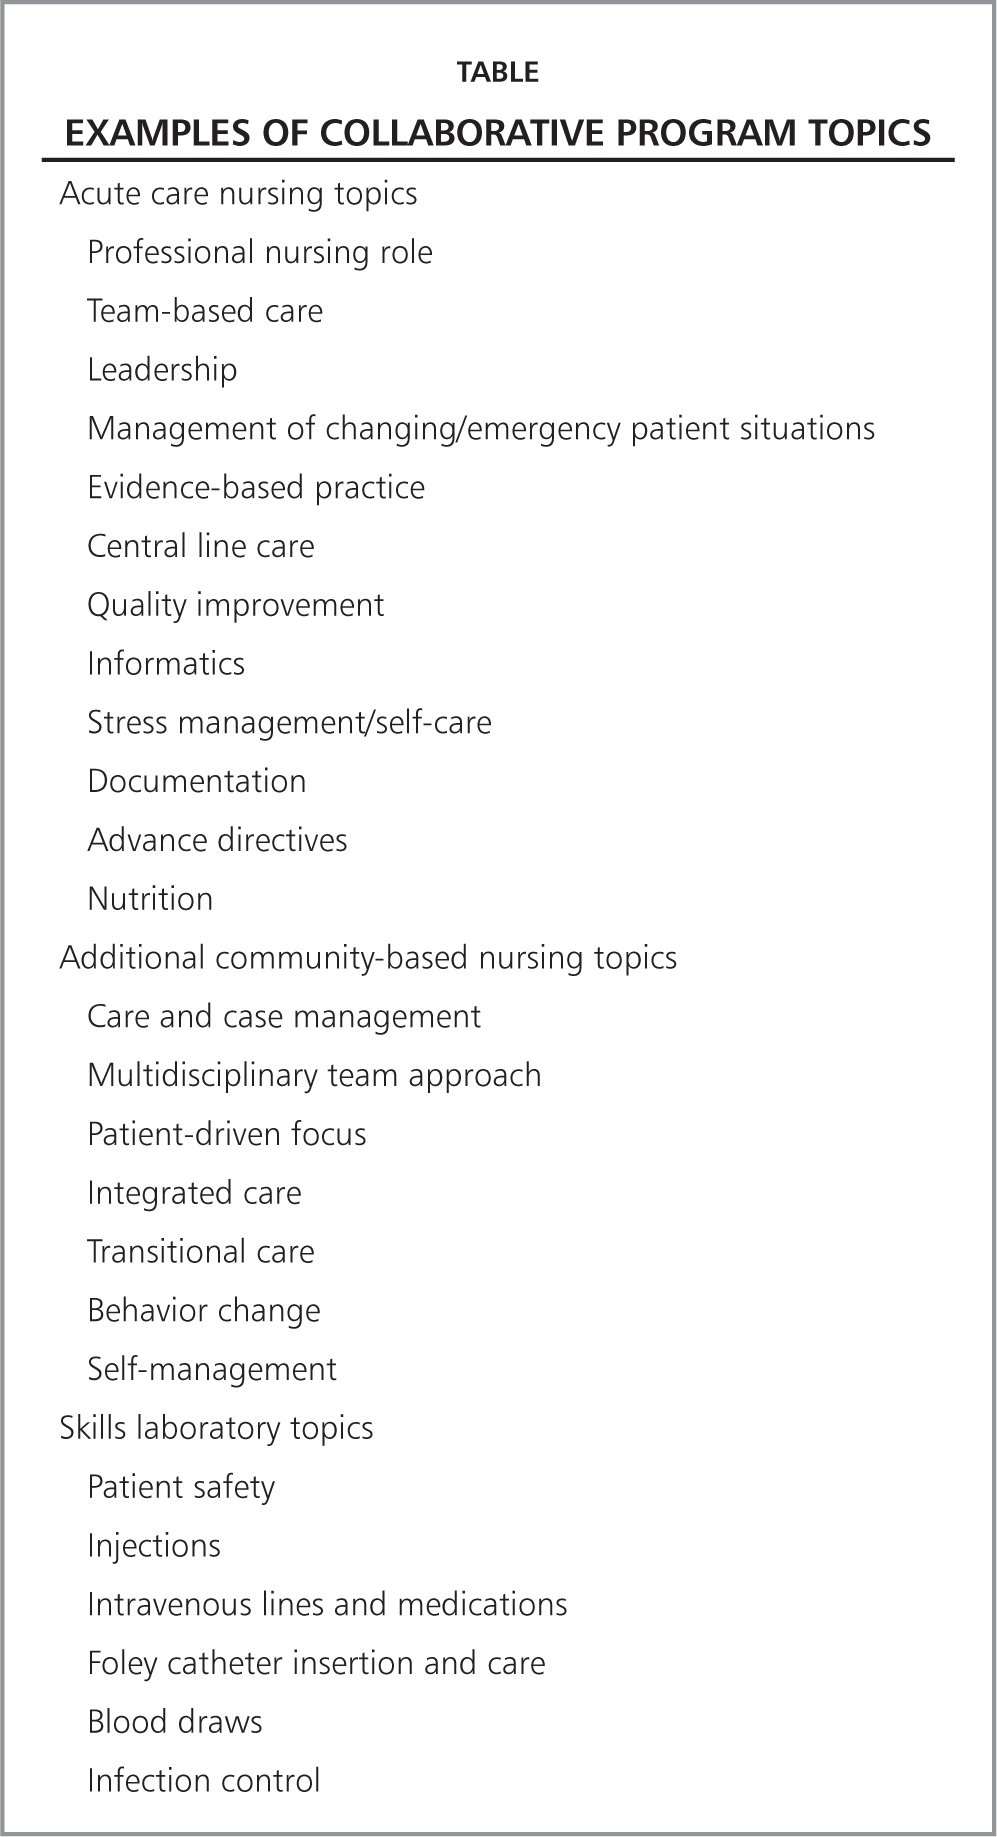 an example of managing multiple demands nurse